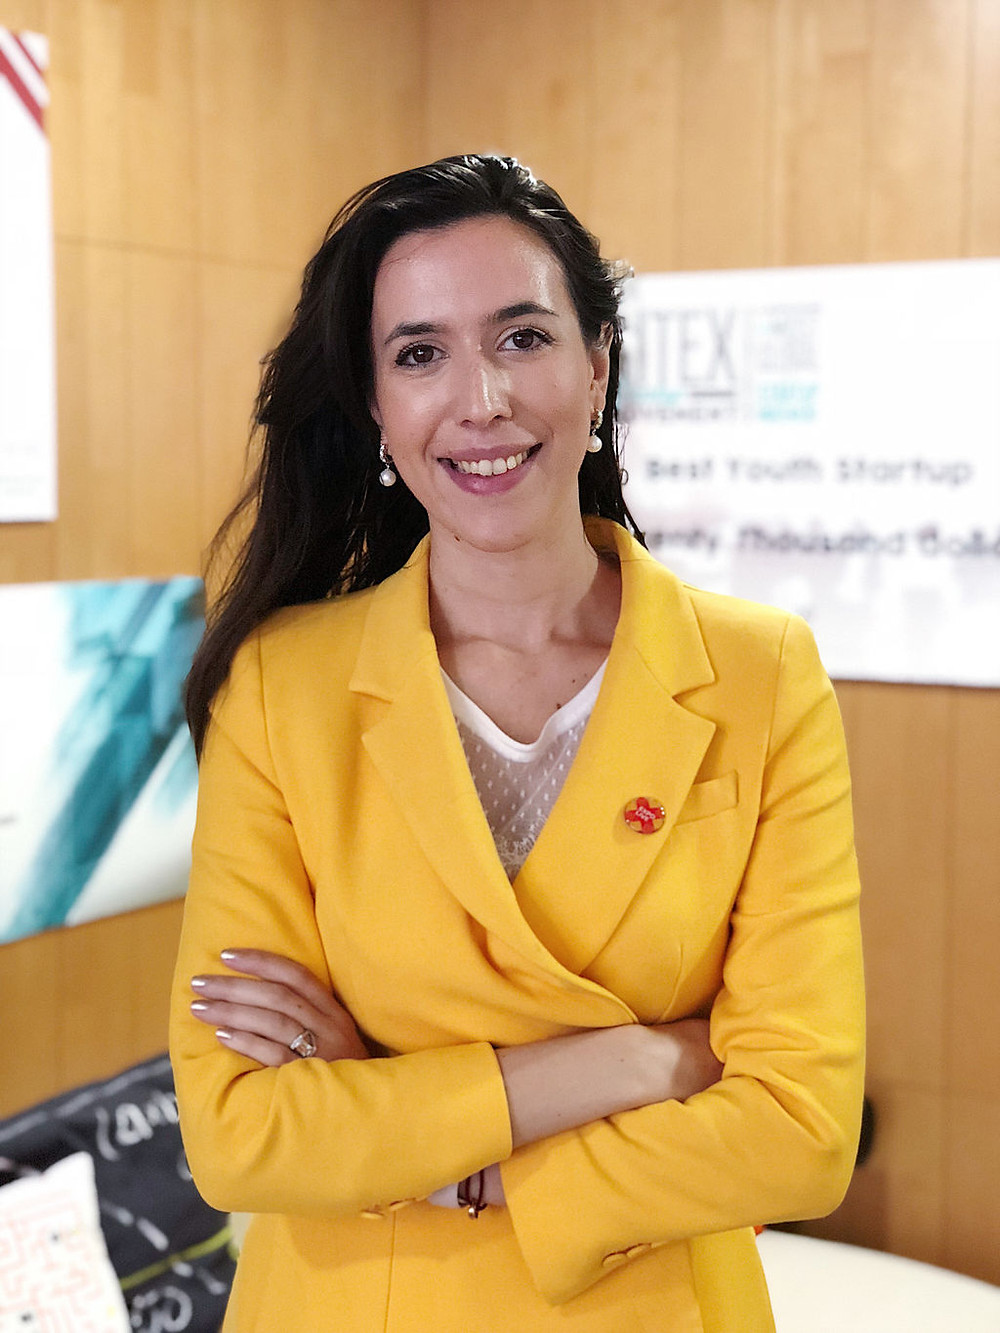 Thea Myhrvold, Founder & CEO of GetBEE